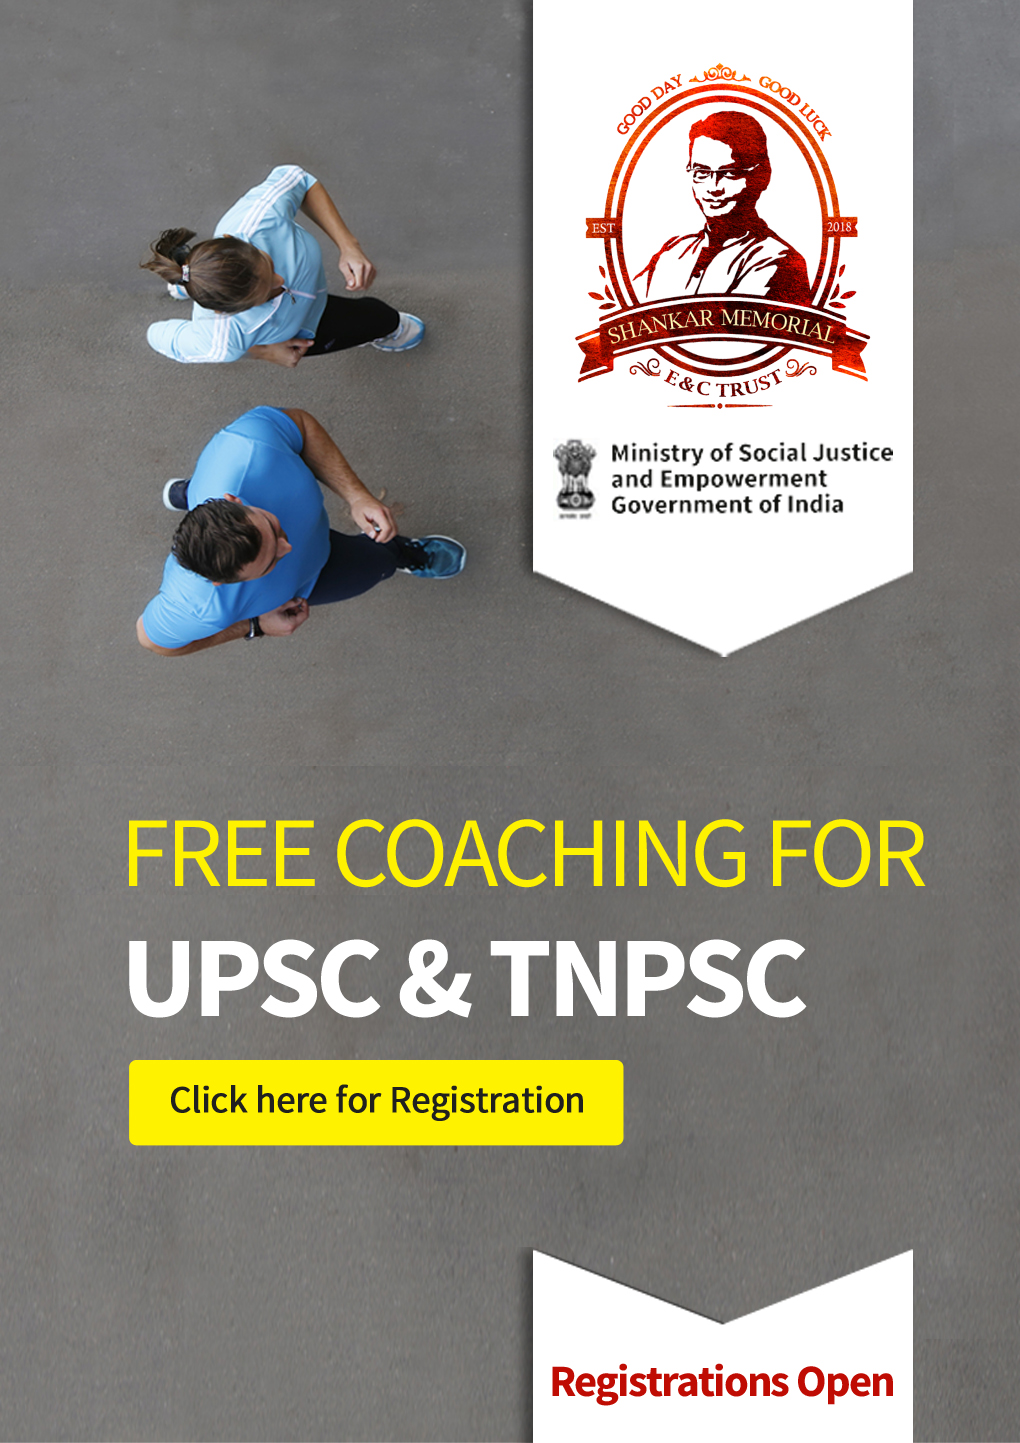 Free Coaching for UPSC and TNPSC